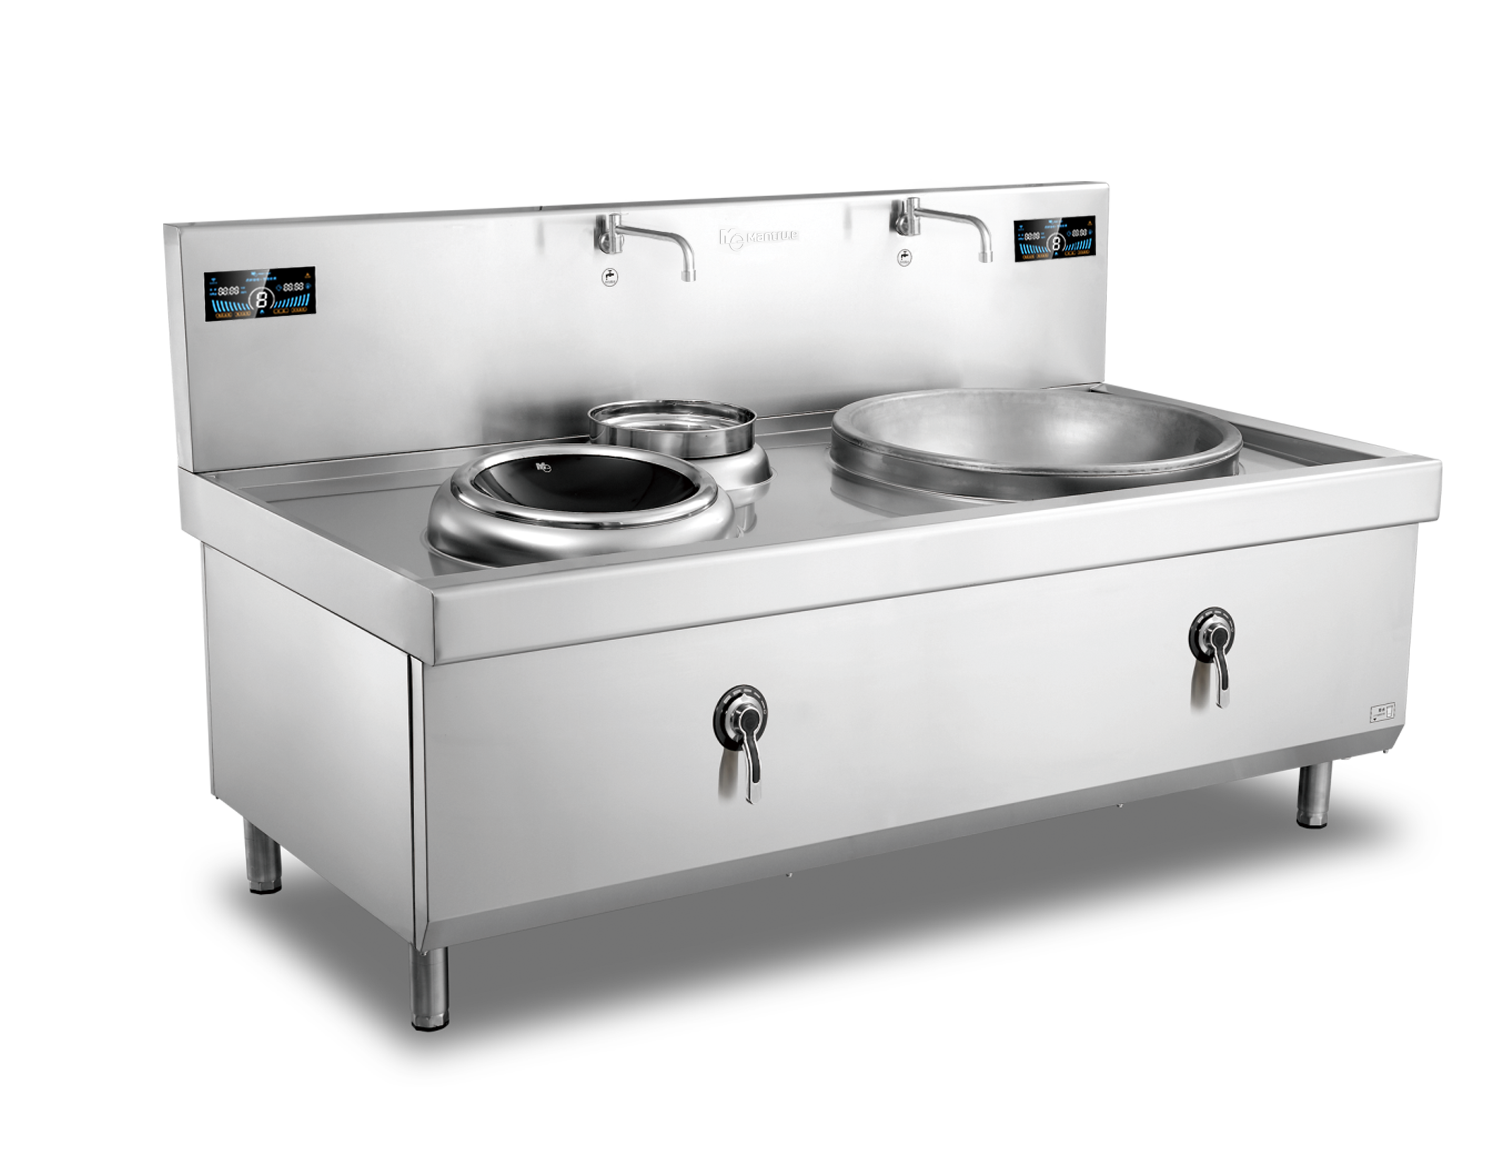 400mm+800mm Double Burner with one basin Induction Wok